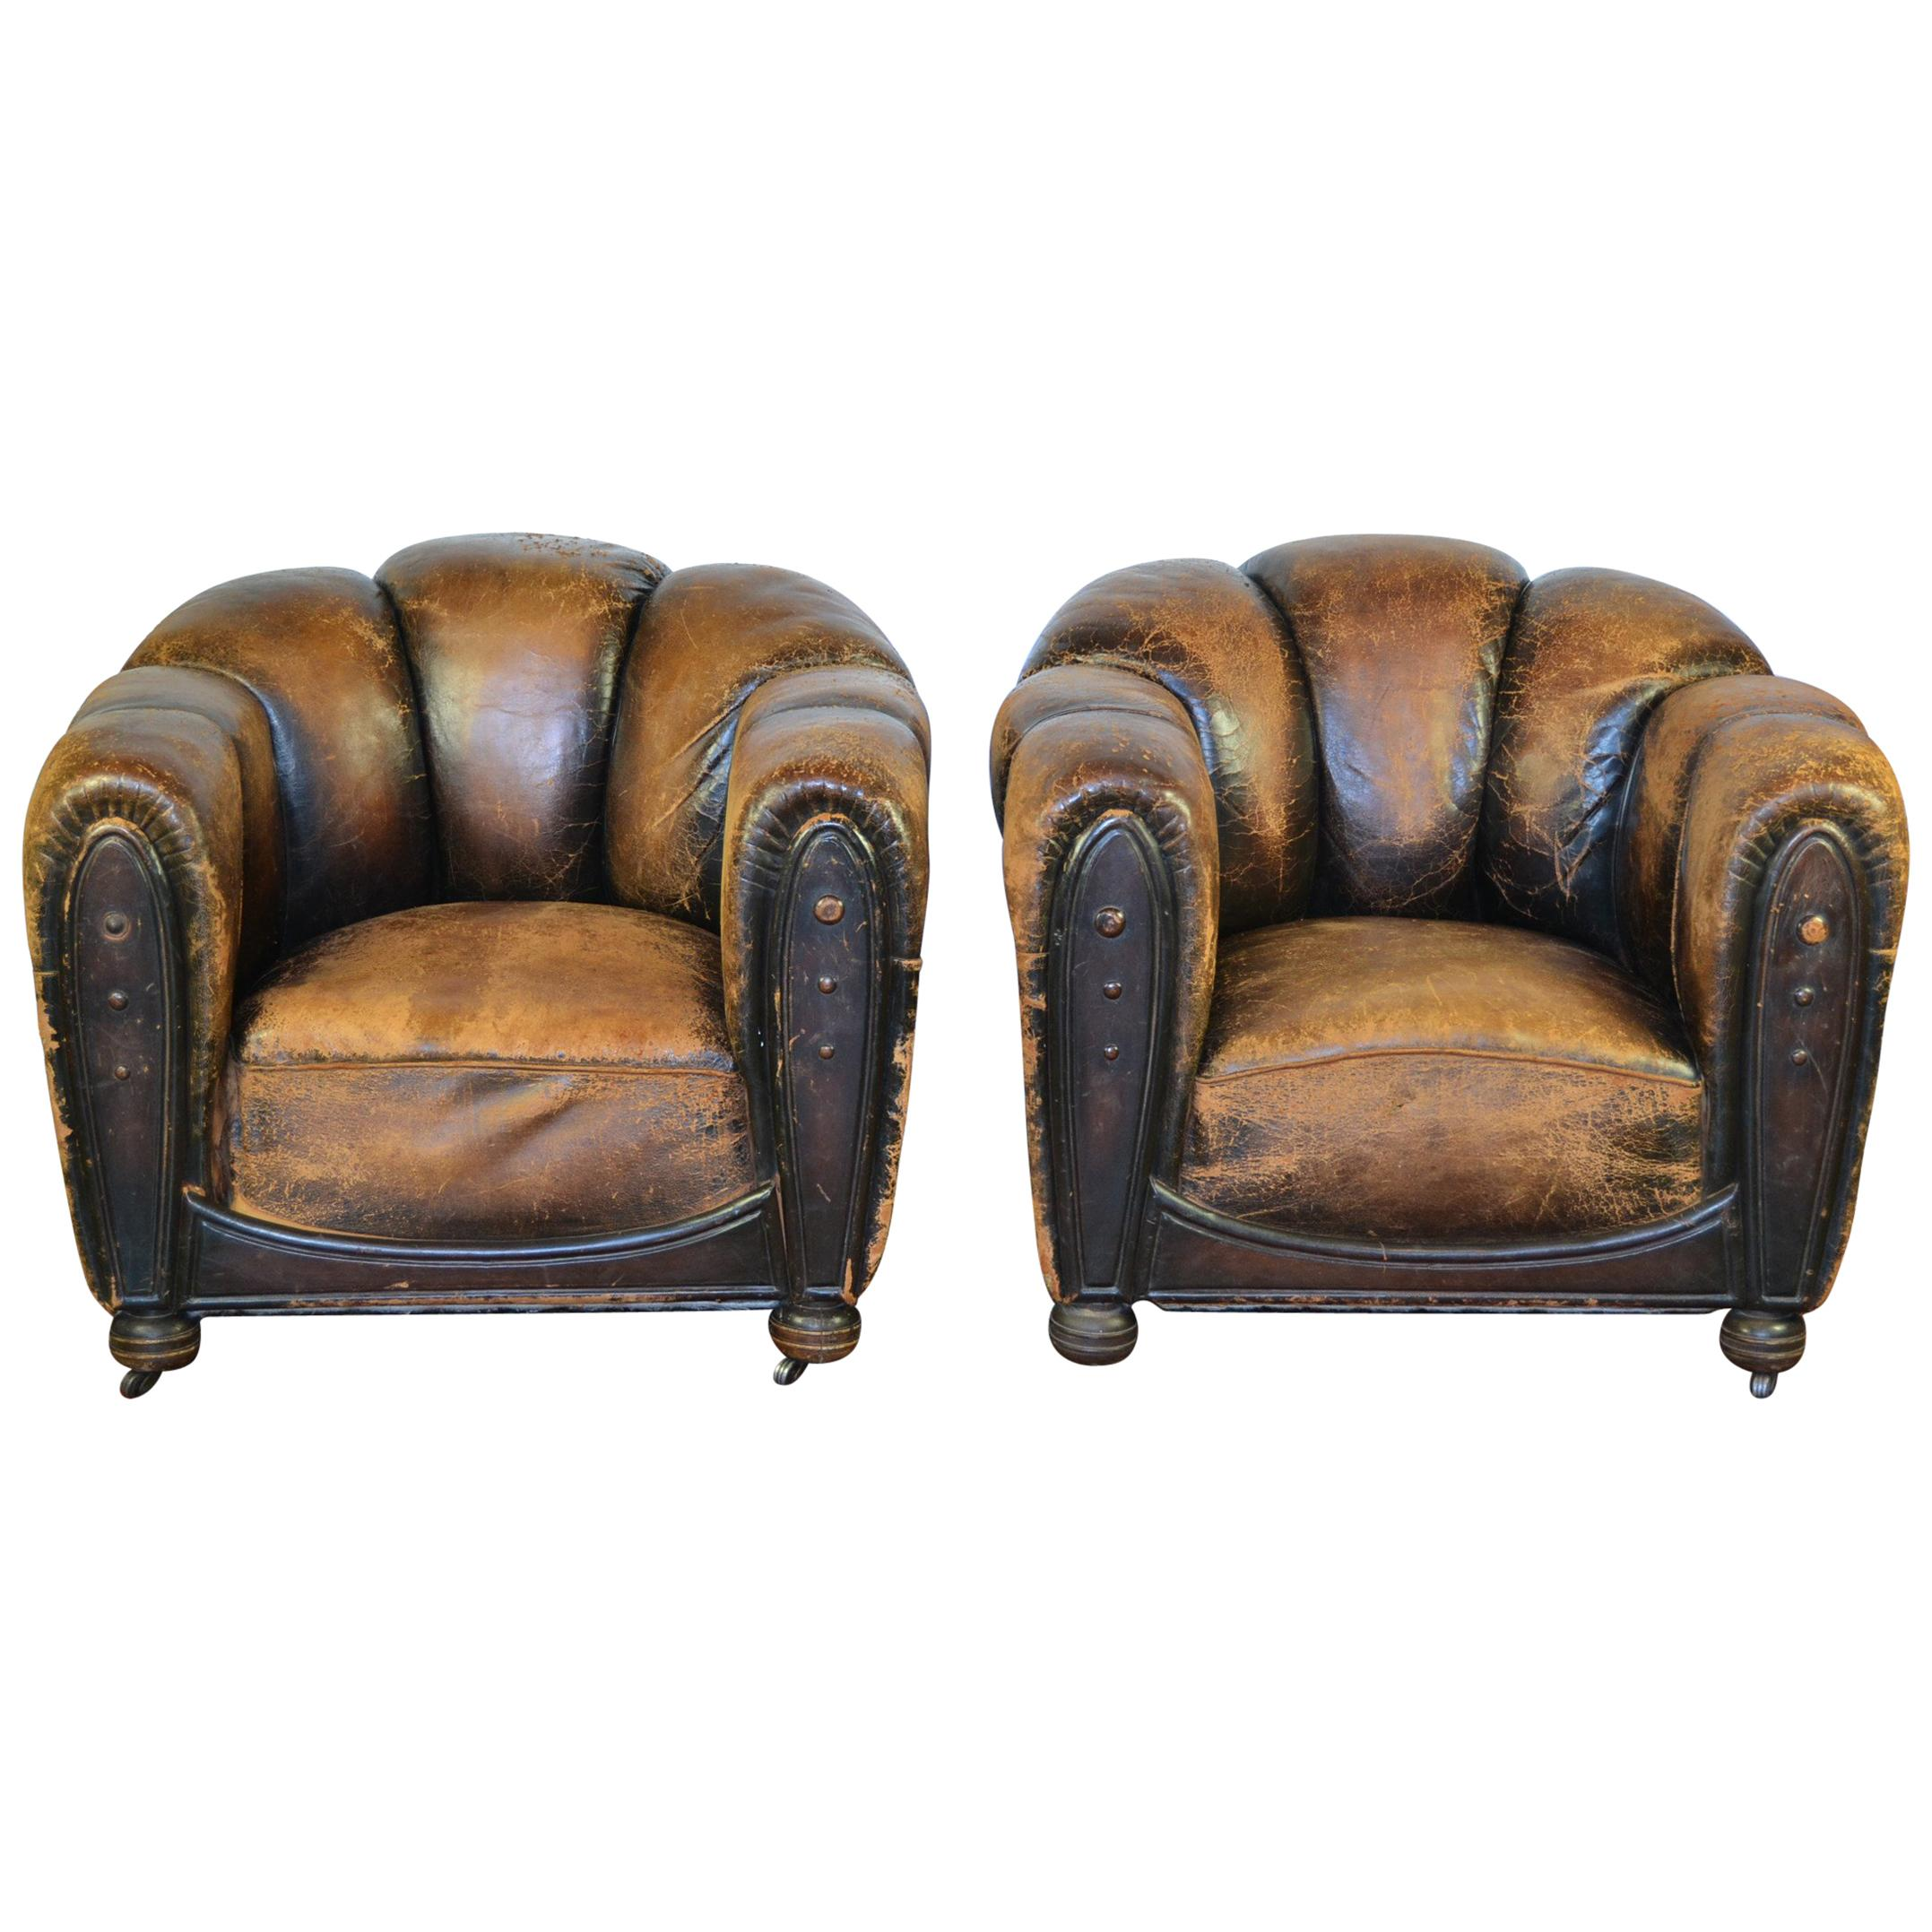 Pair Of Art Deco Leather Club Chairs, Armchairs, Scalloped Back, Aged  Patina For